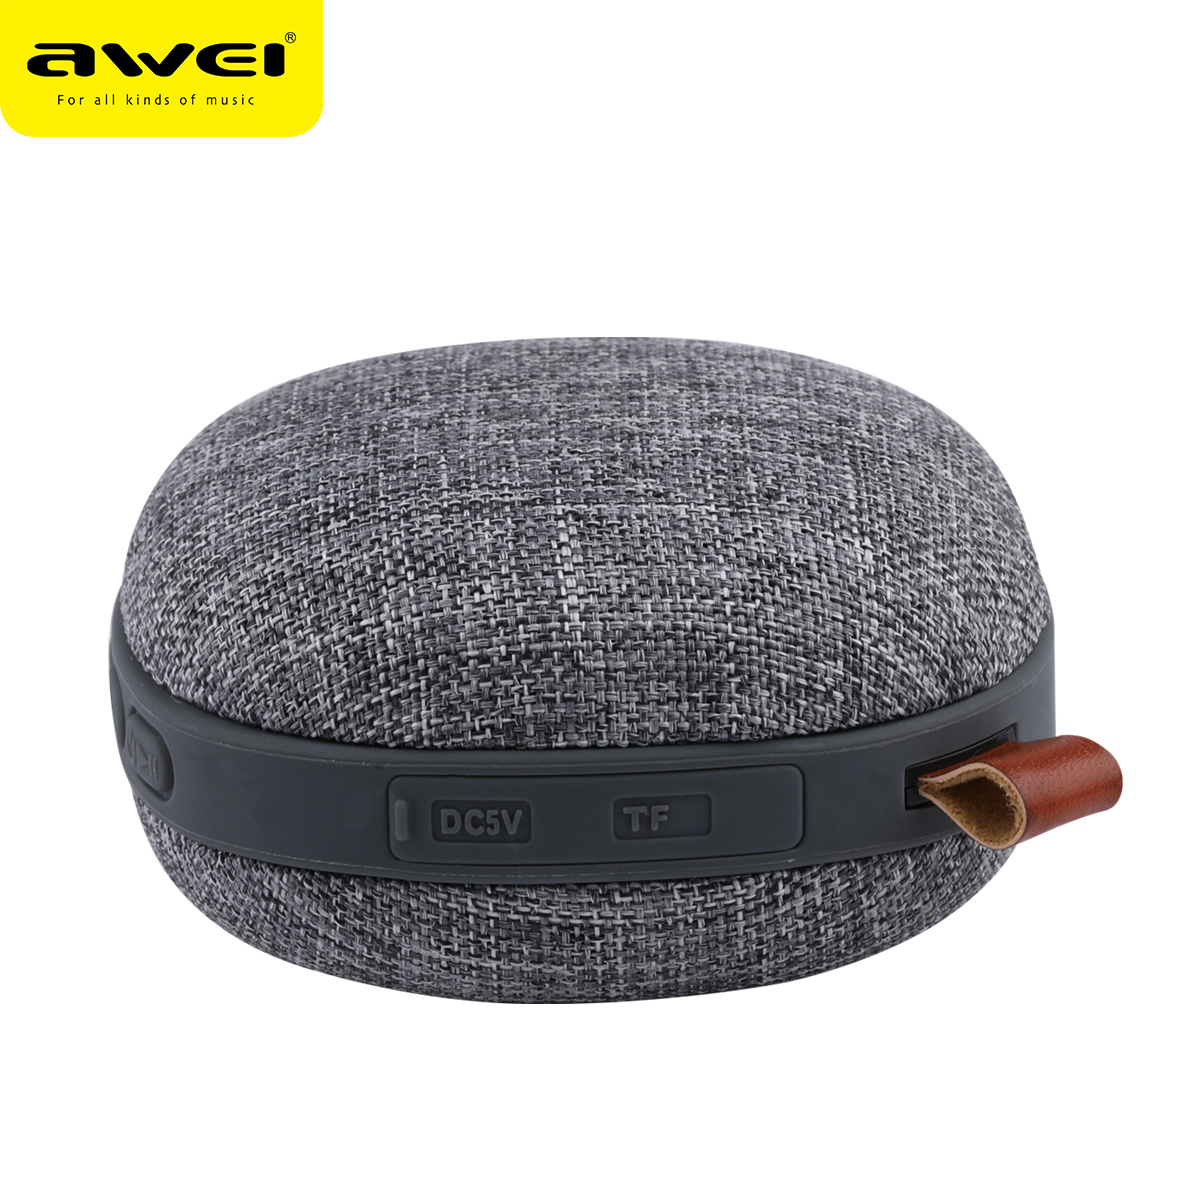 AWEI Y260 Bluetooth Speaker Mini Portable Wireless Speaker IPX4 Waterproof Kalonki Sound Box Blutooth Boombox For Computer Phone